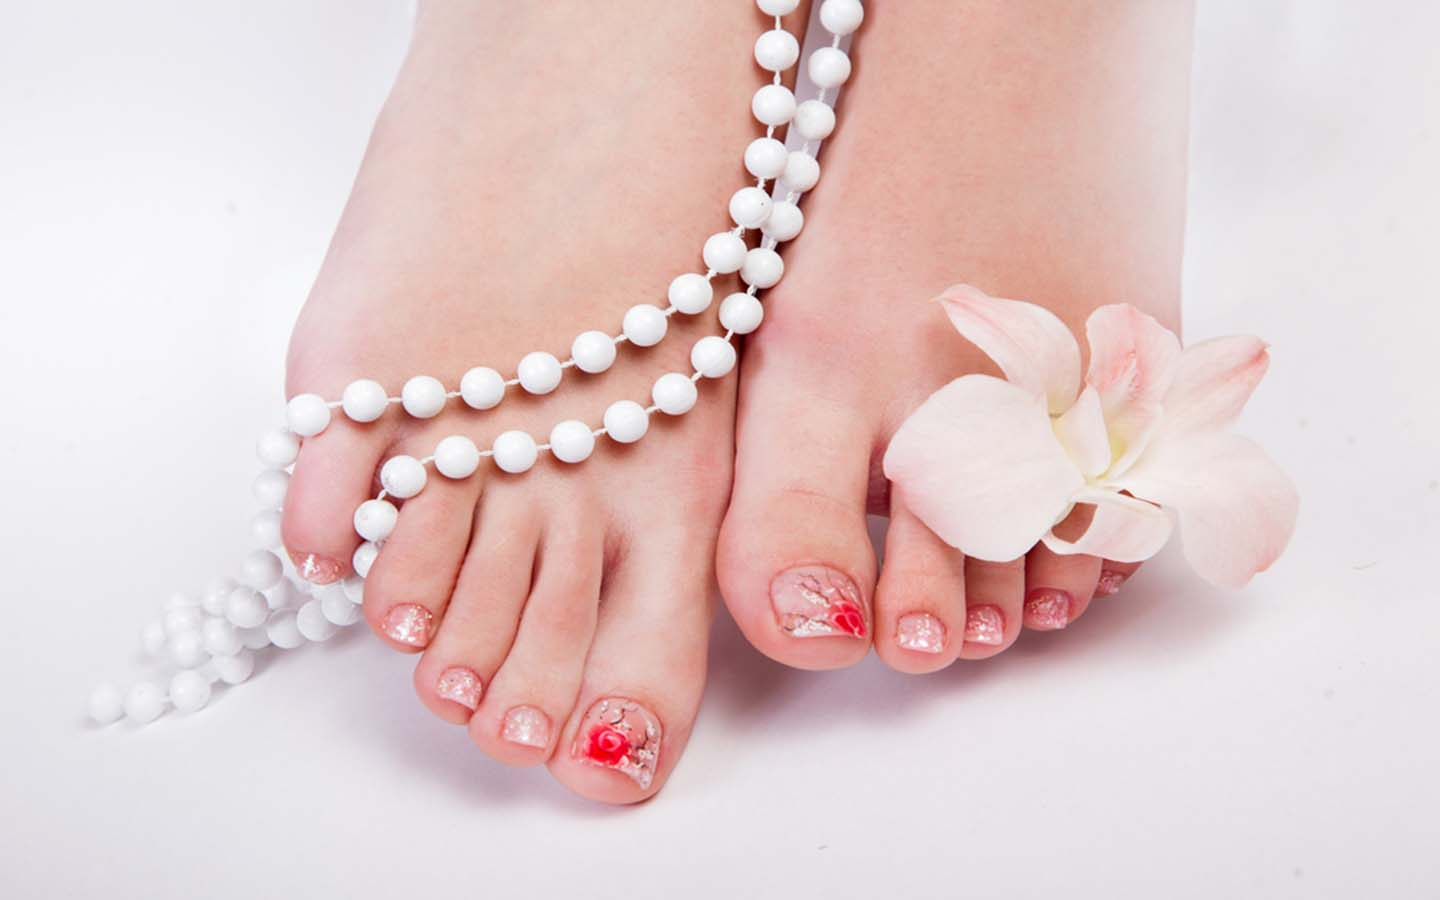 Nail art on the feet